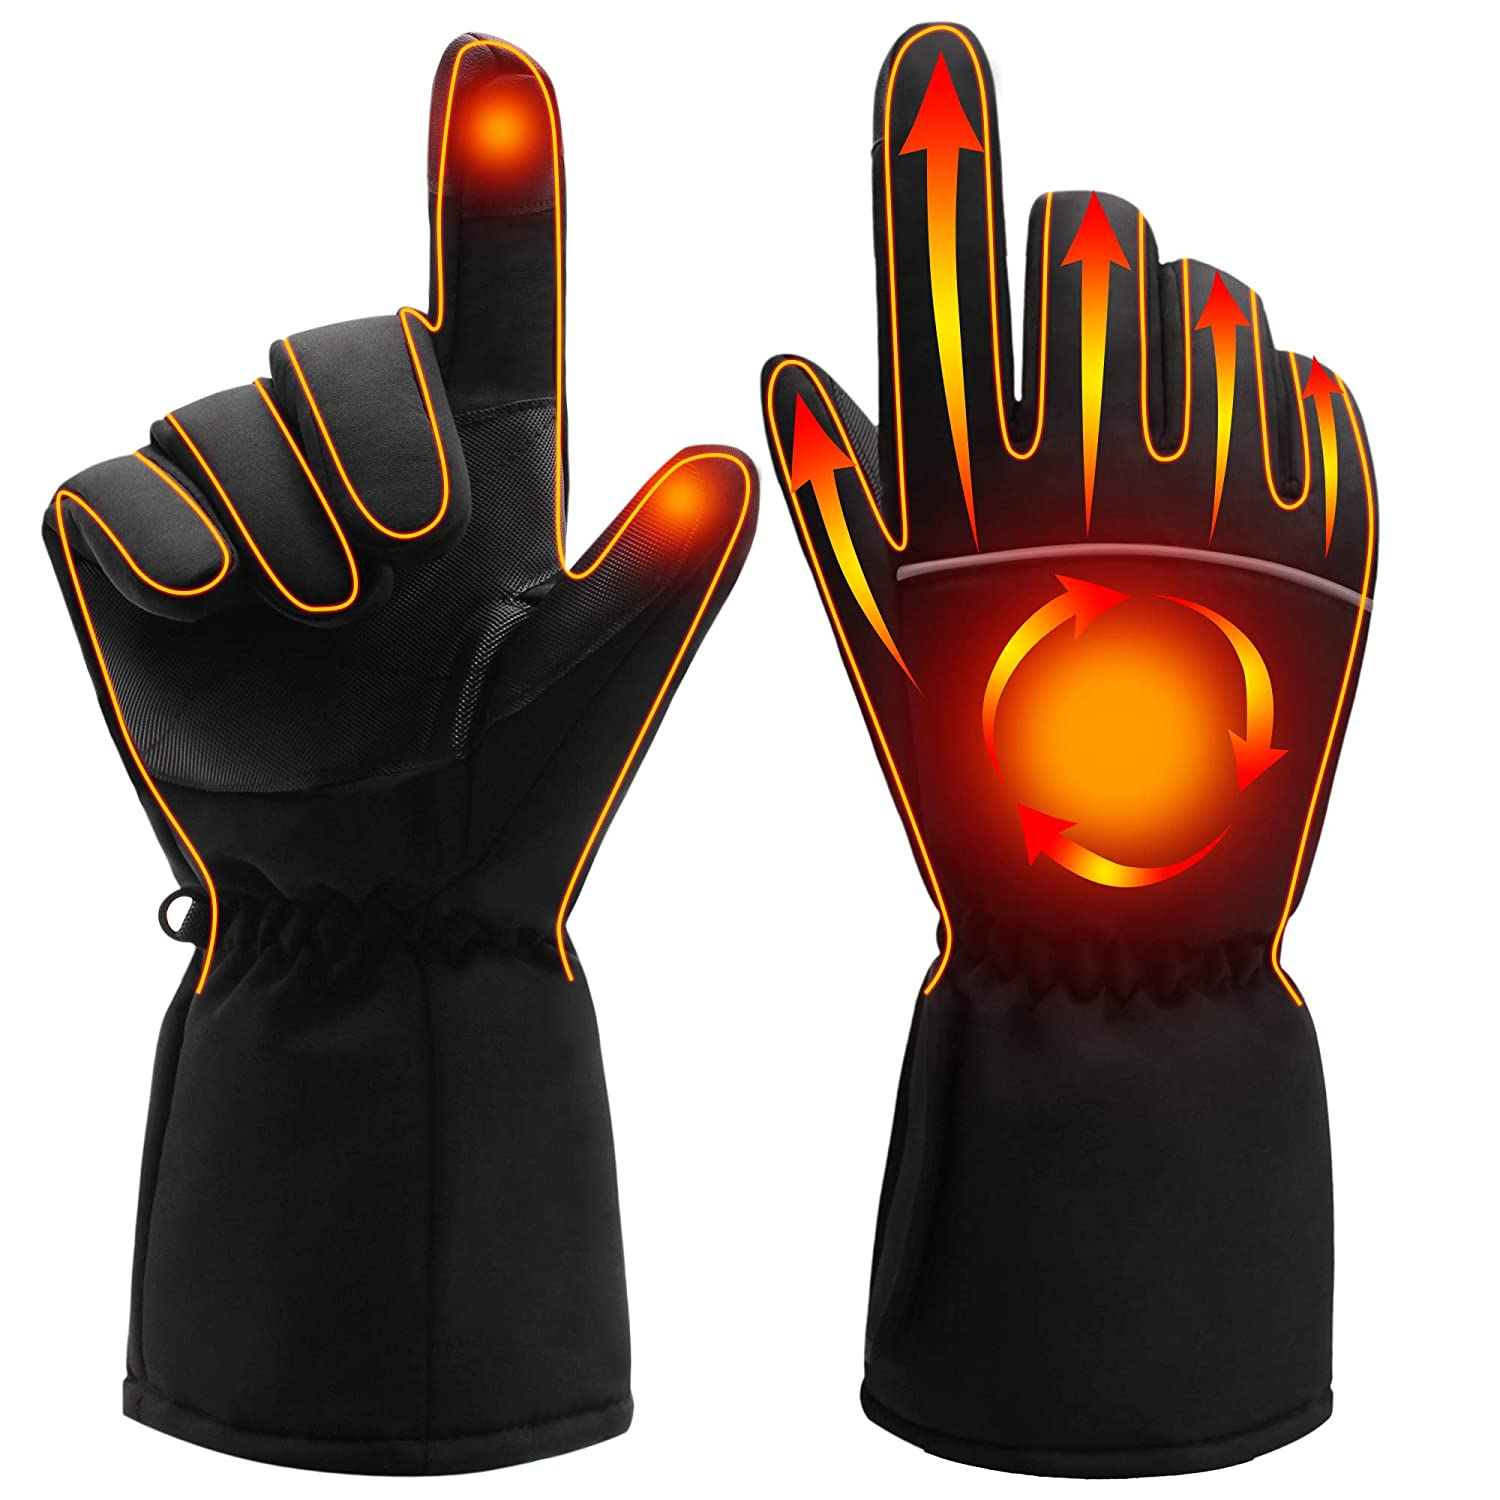 SPRING Electric Heated Gloves,Portable Battery Heating Thermal Gloves,Waterproof Touchscreen Thermal Gloves for Cycling,Motorcycle,Hiking,Snowboarding